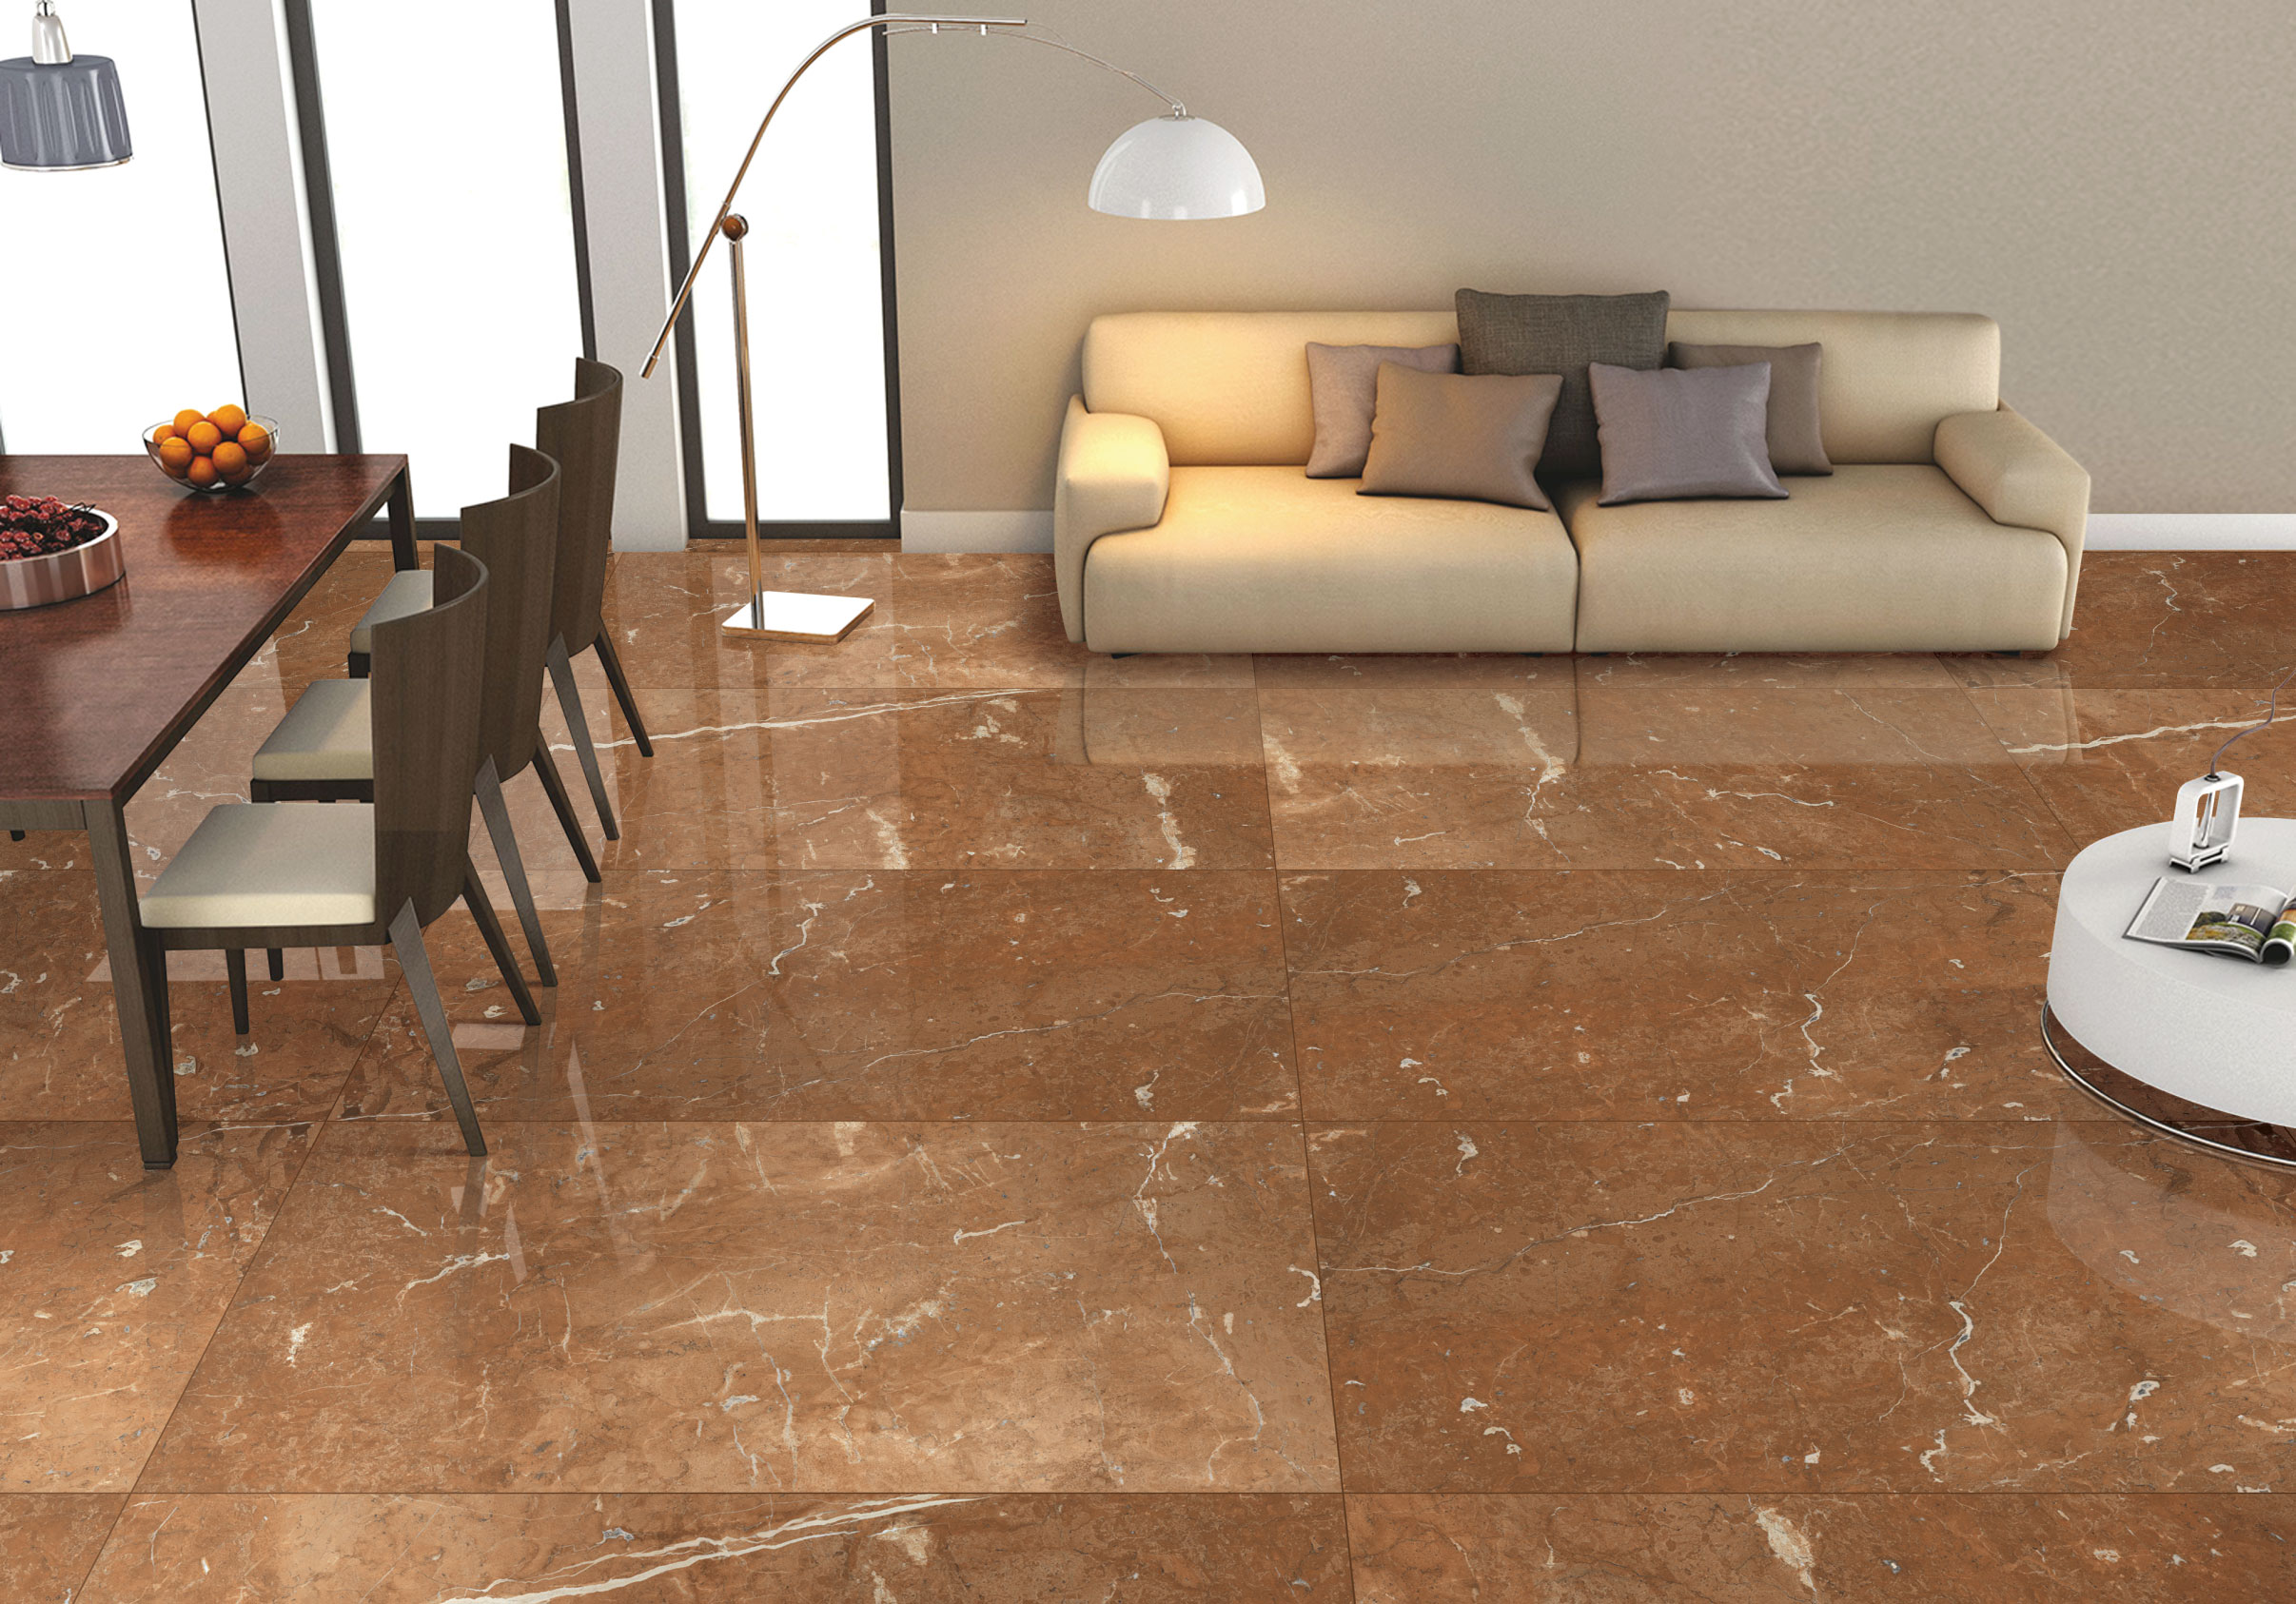 The Latest Trends in Ceramic Floor Tiles